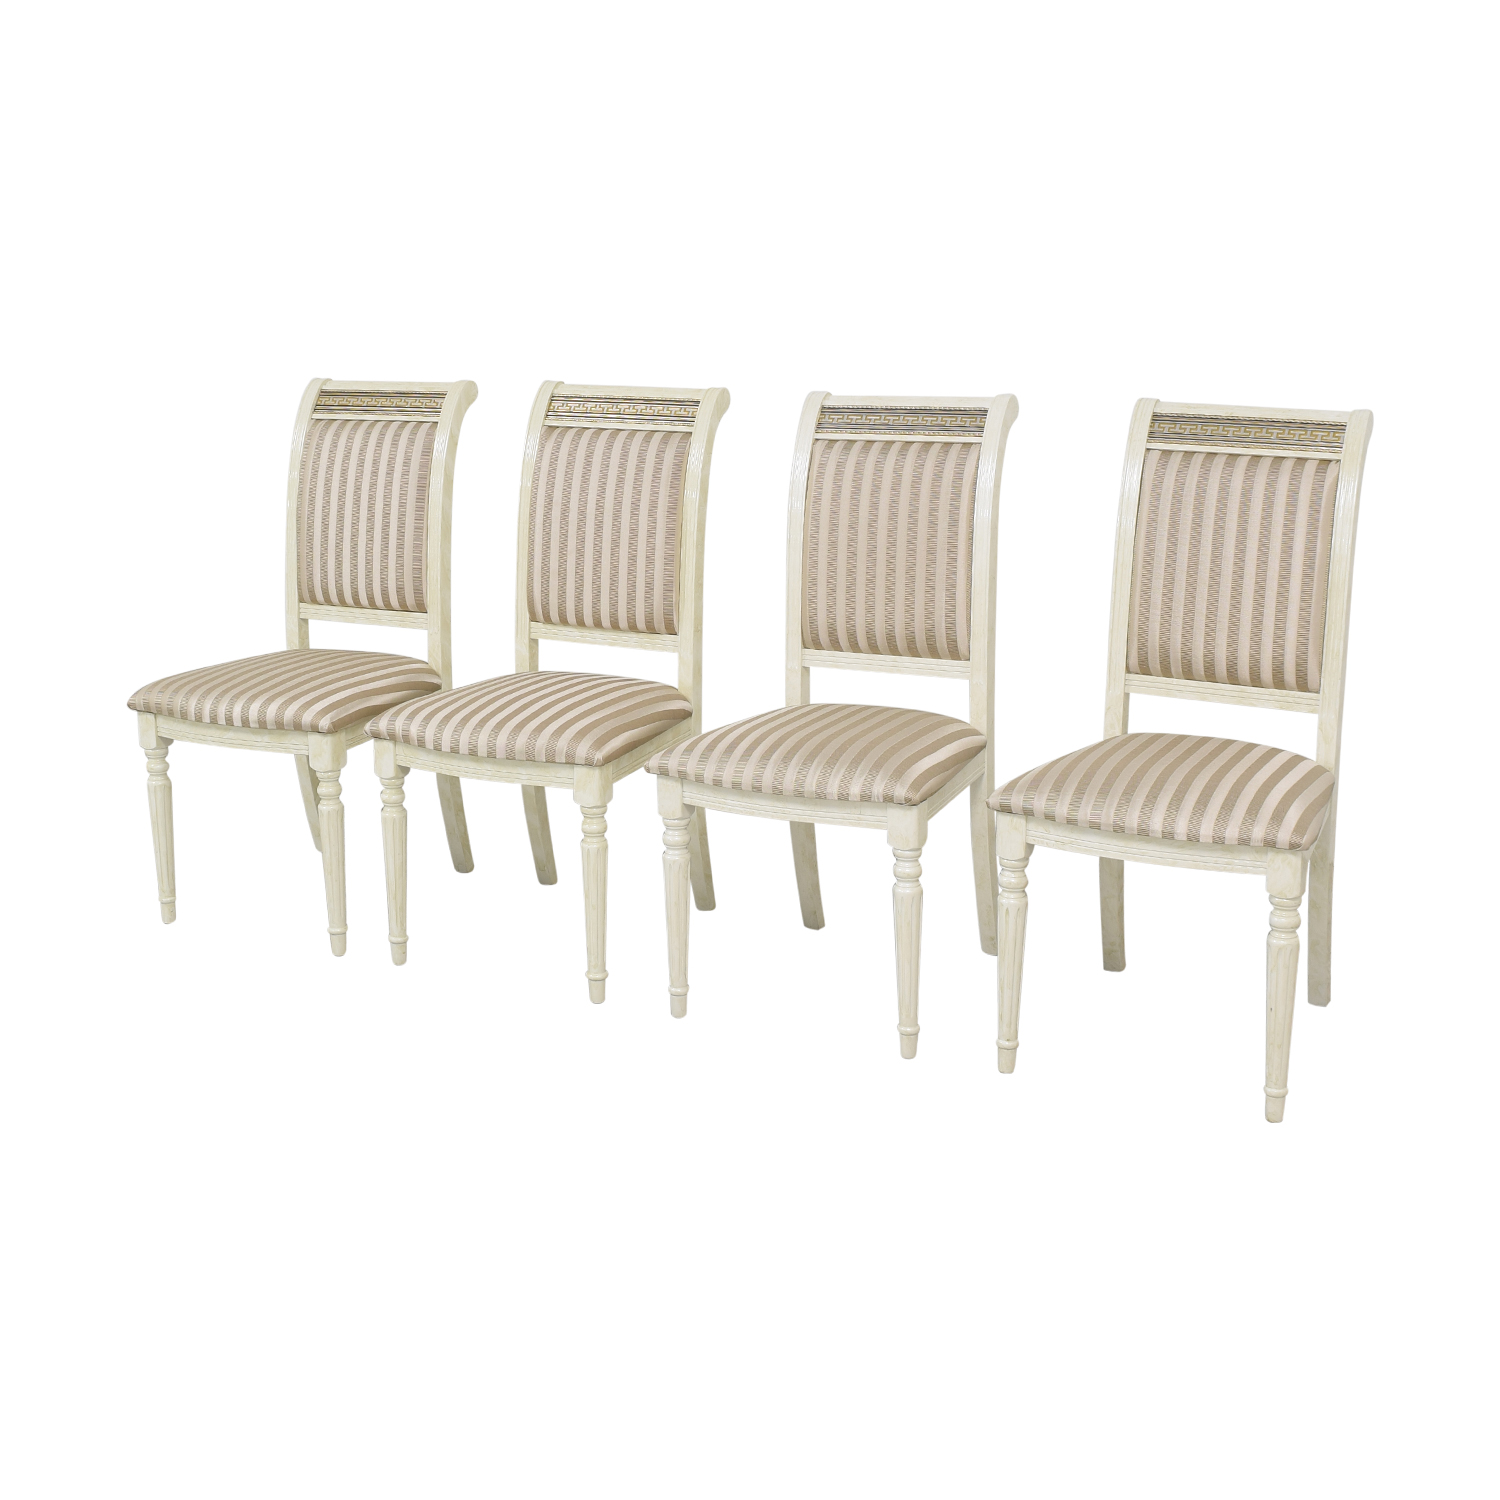 Arredoclassic Arredoclassic Liberty Dining Chairs discount